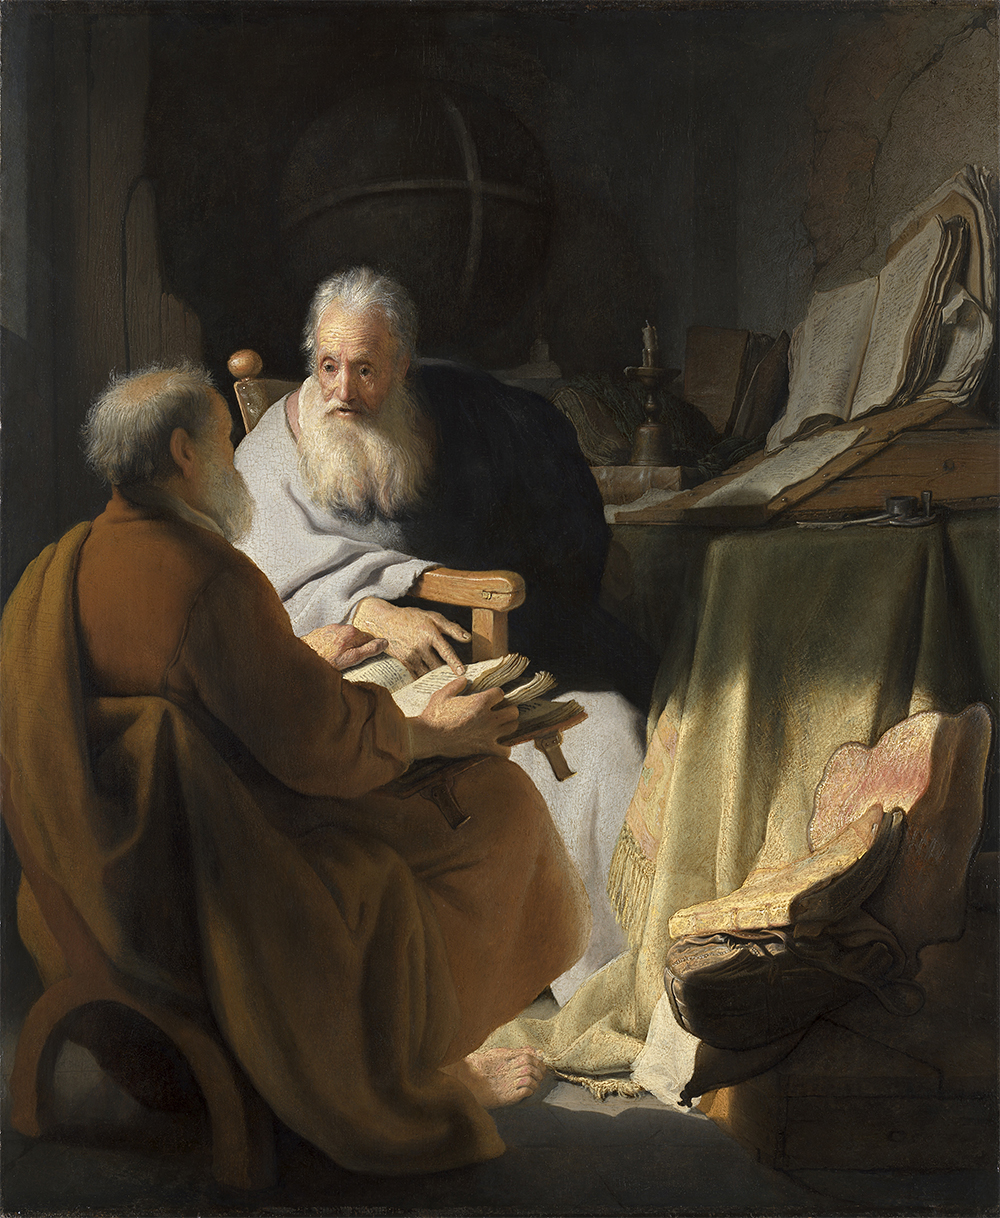 Rembrandt Harmensz. van Rijn  Two old men disputing 1628  oil on wood panel  72.4 × 59.7 cm  National Gallery of Victoria, Melbourne Felton Bequest, 1936